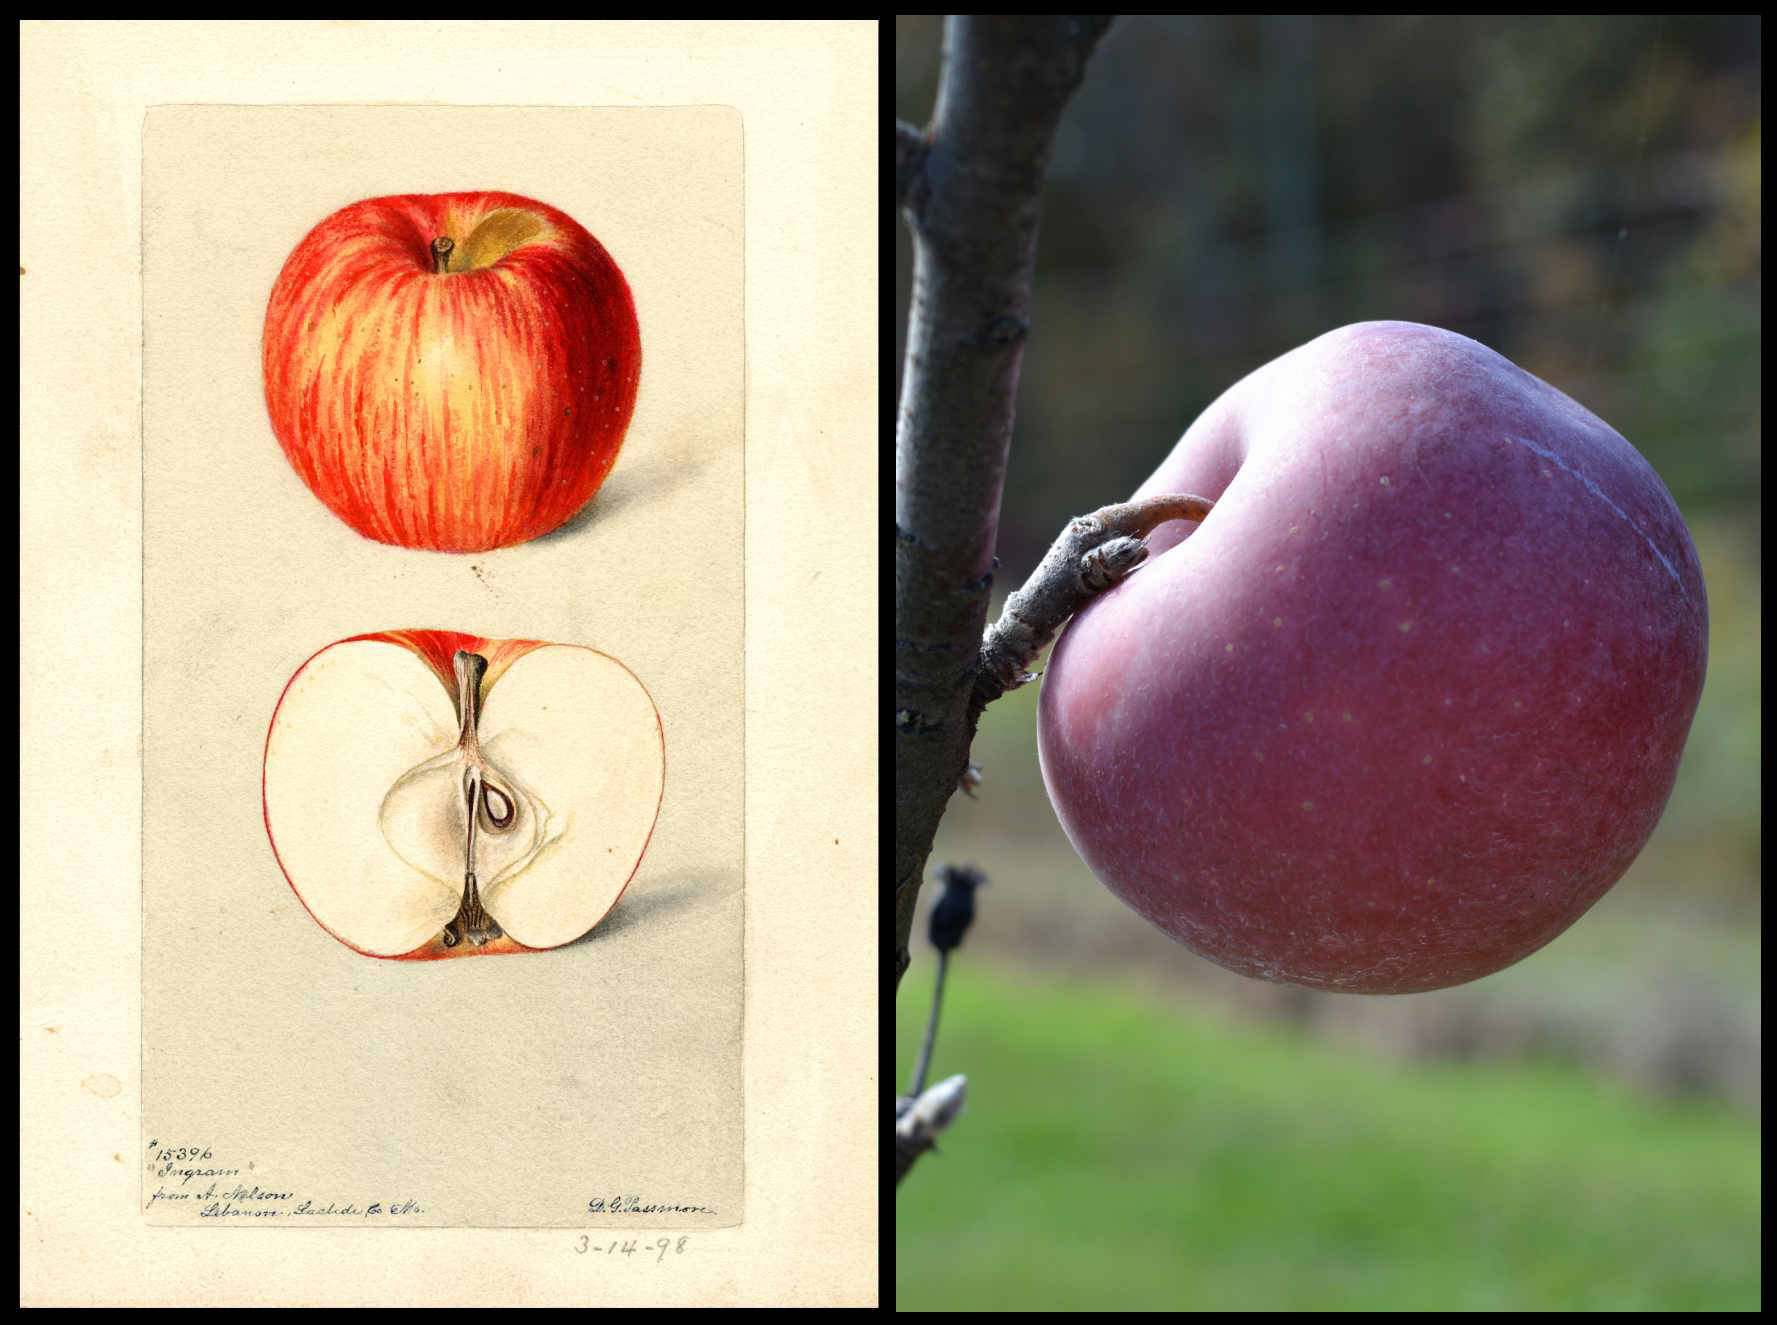 red apple with small white spots. Entire fruit covered with a white haze.